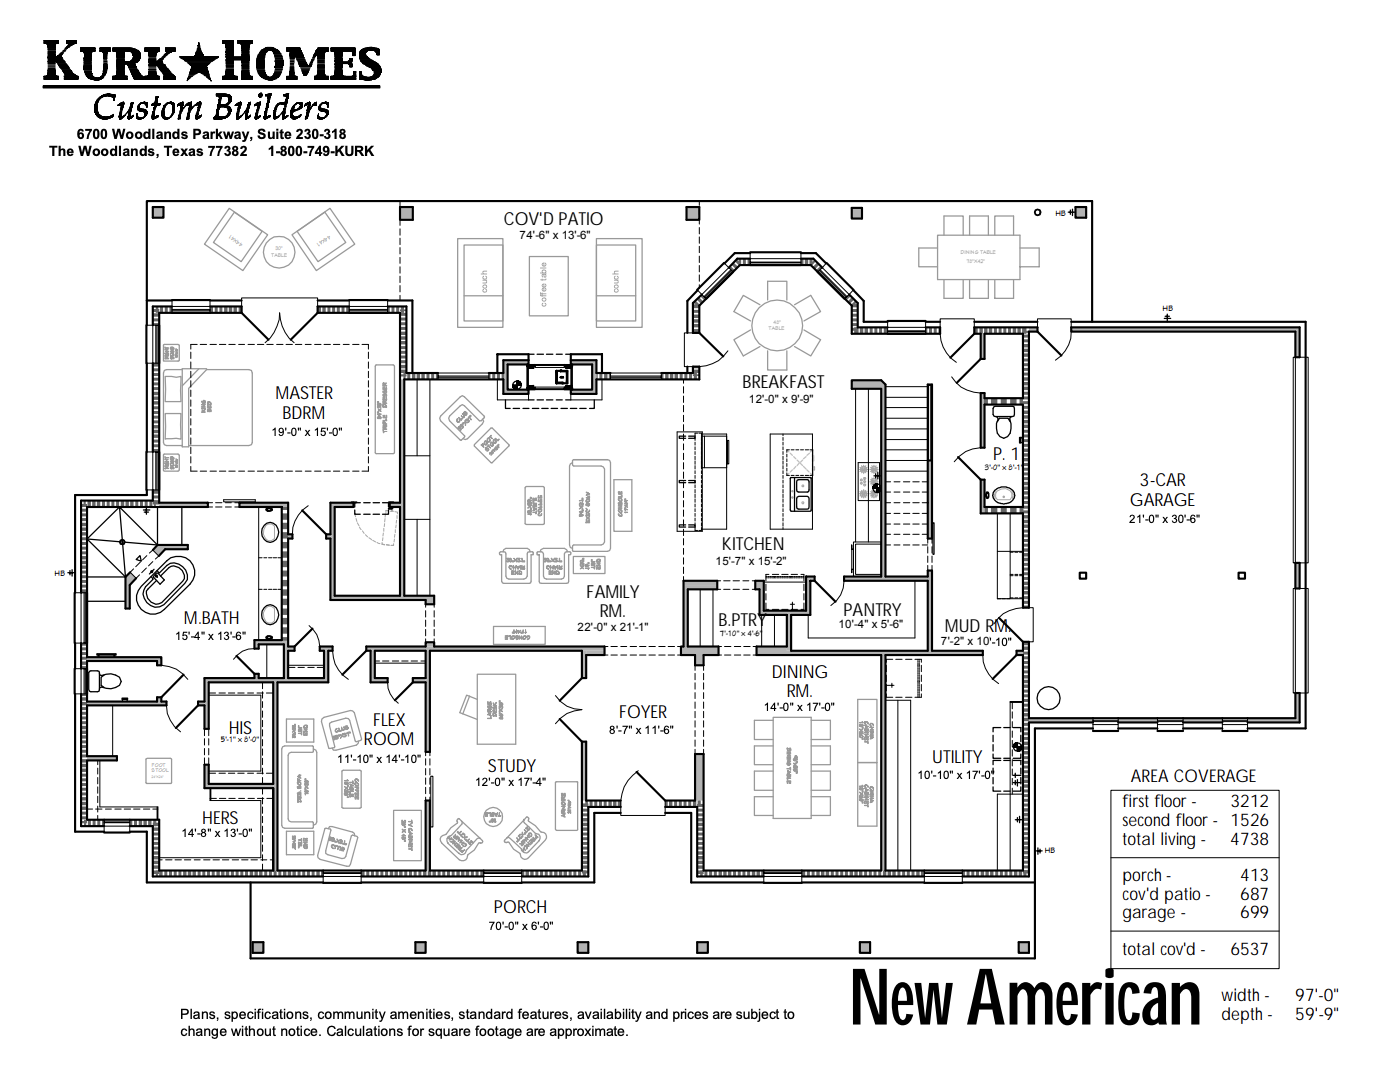 The New American - Home Plan Design